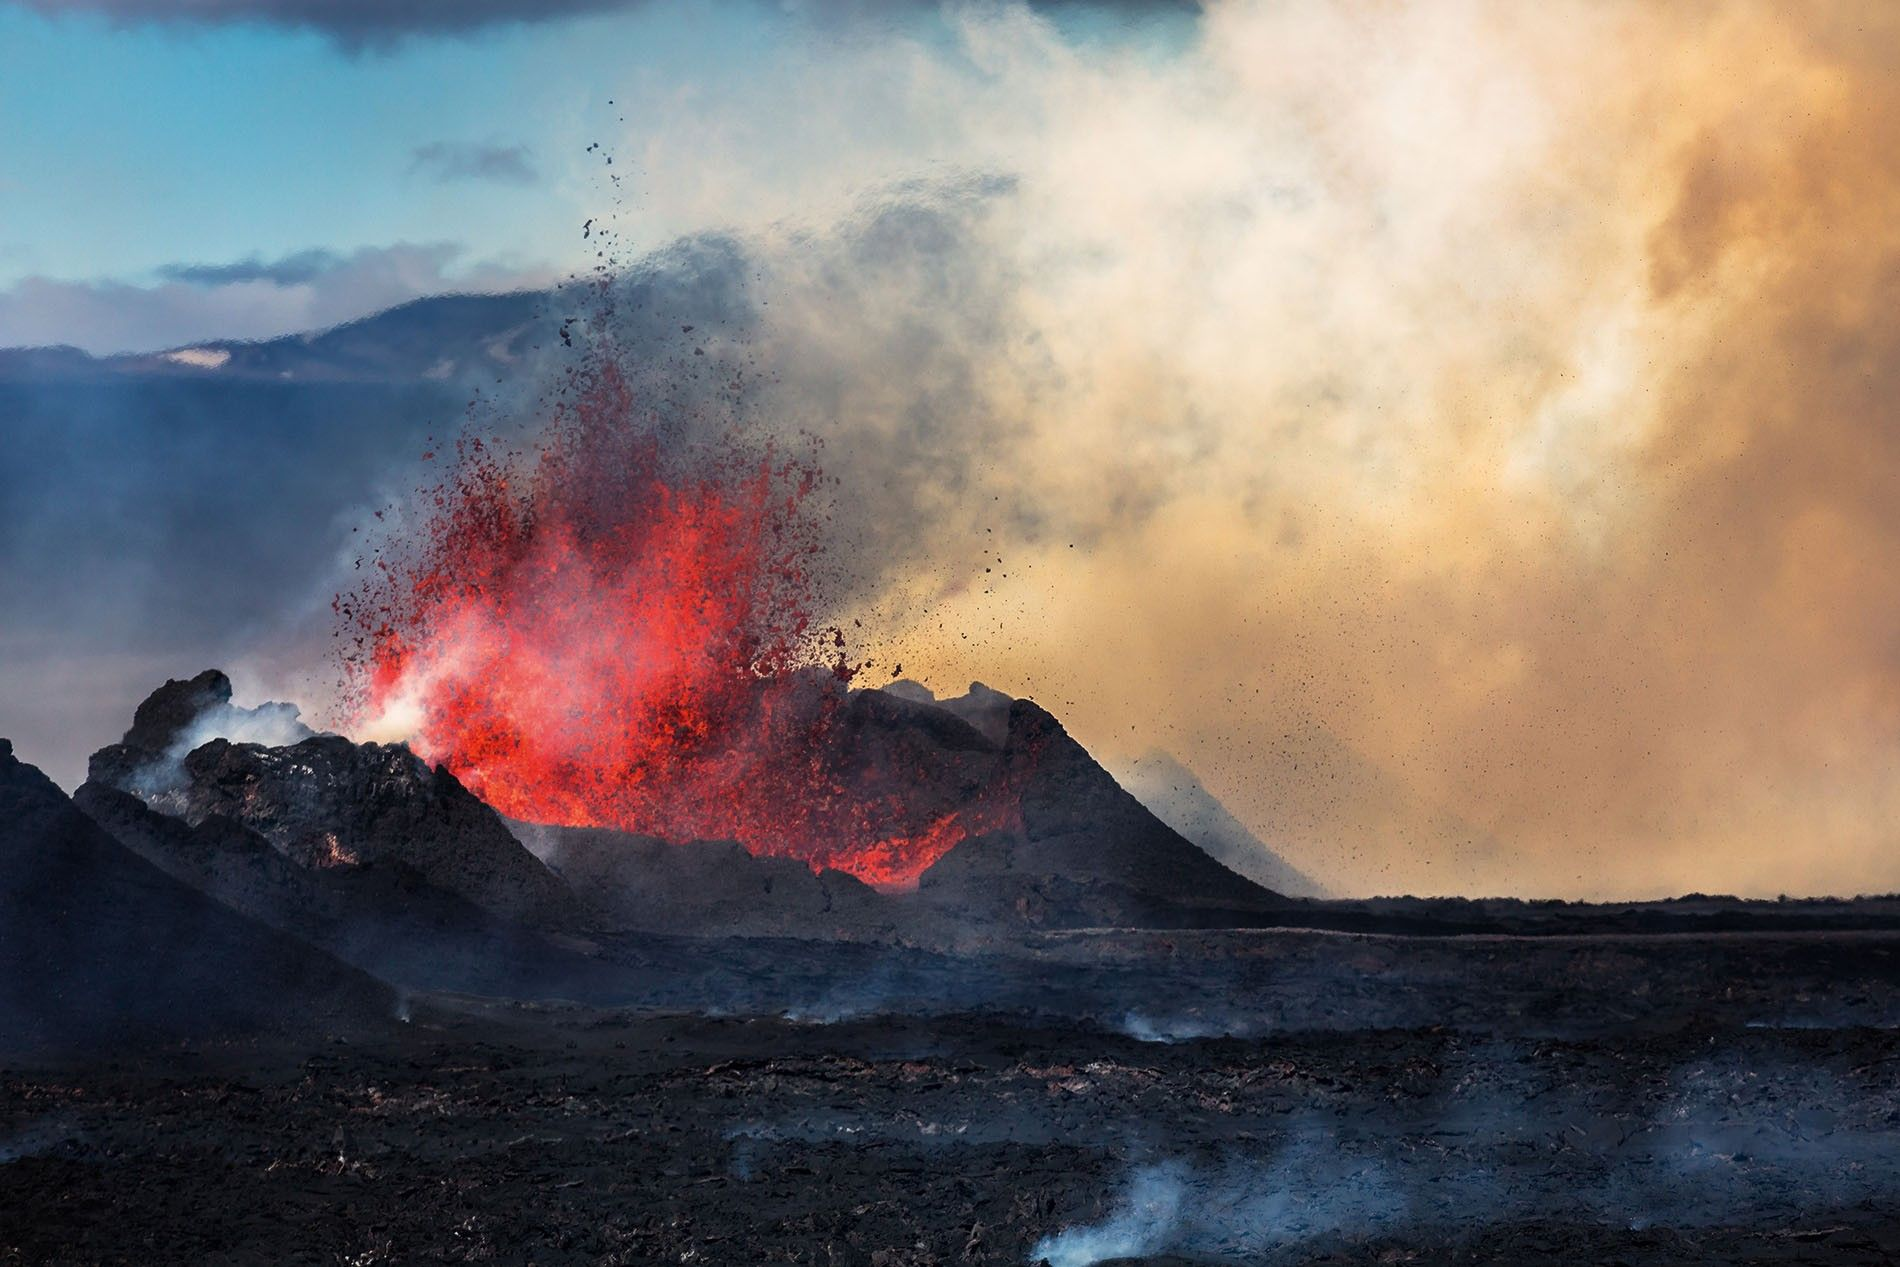 Hot topic: should volcano tourism be banned?